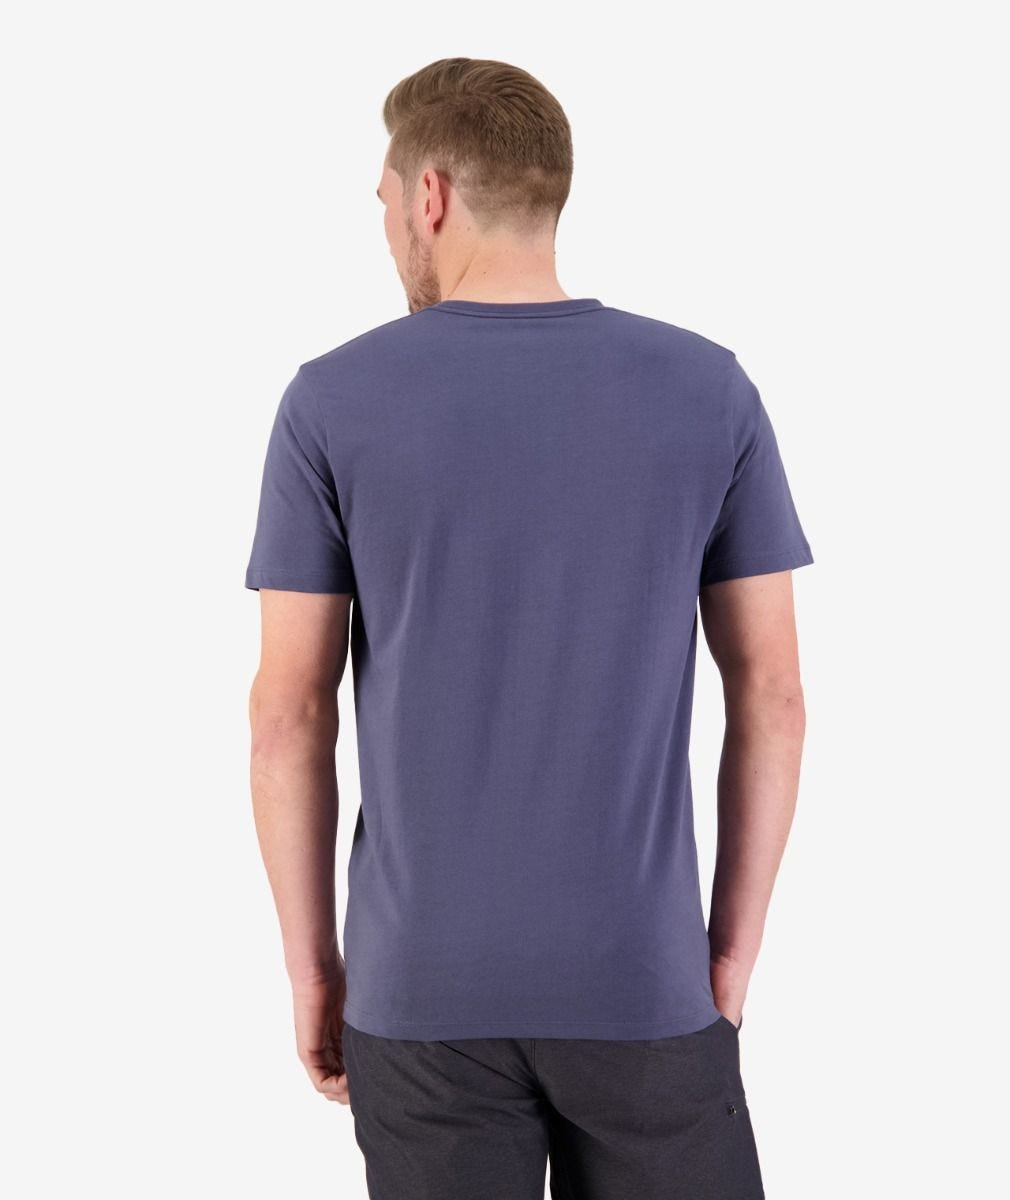 Mens Collegiate Printed Tee (Steel Blue)